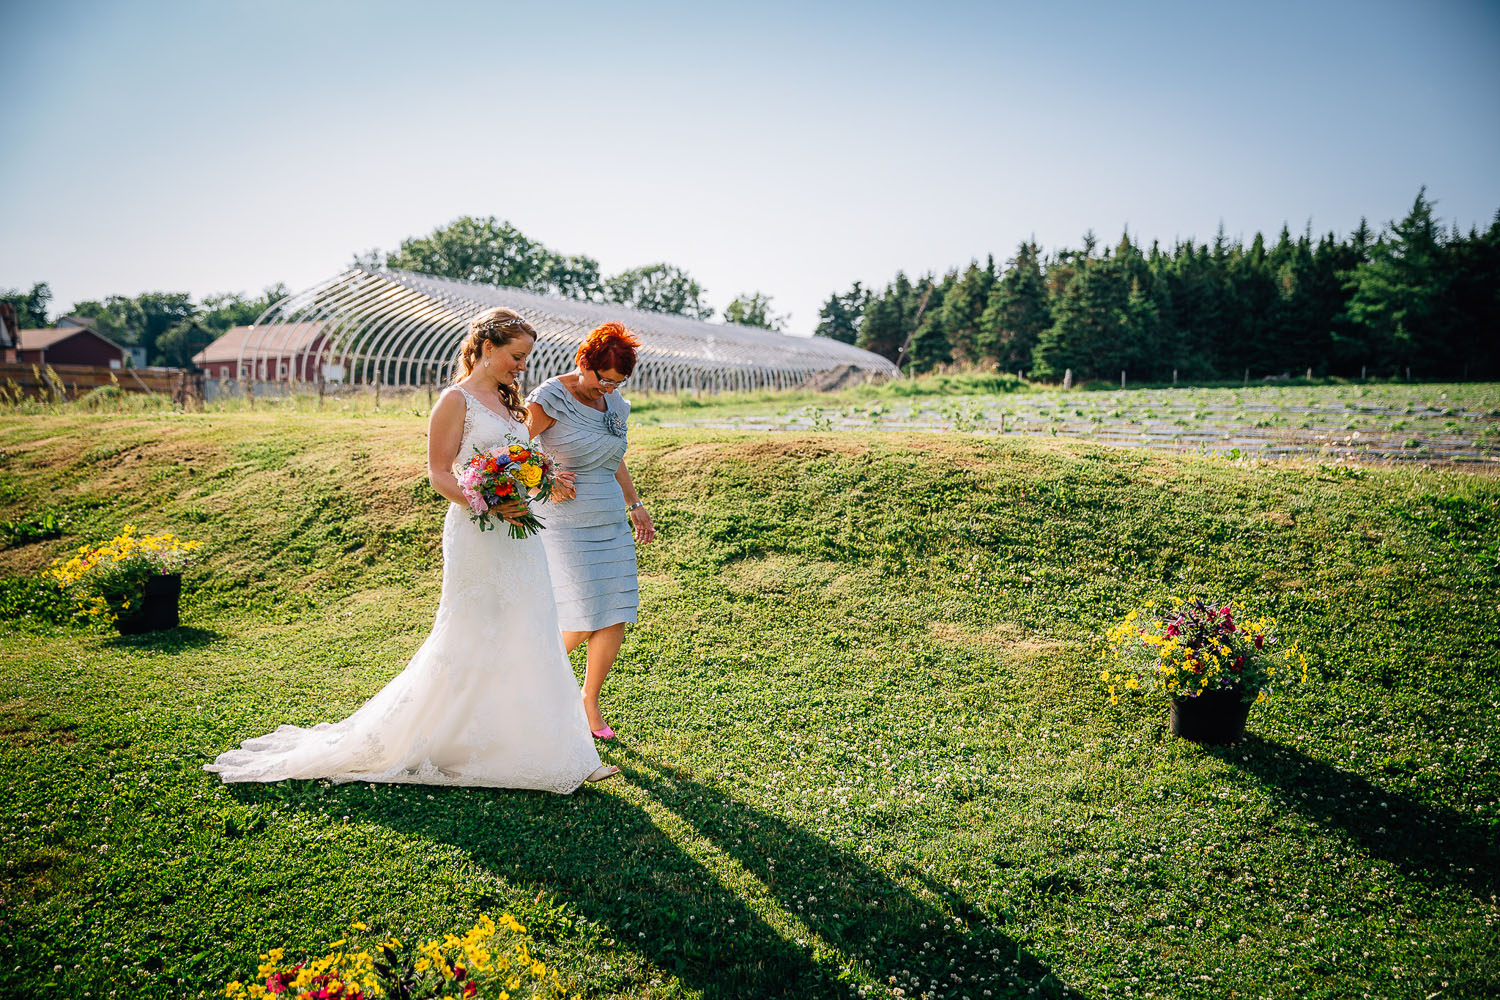 Crystal-Paul-Lesters-Farm-Wedding